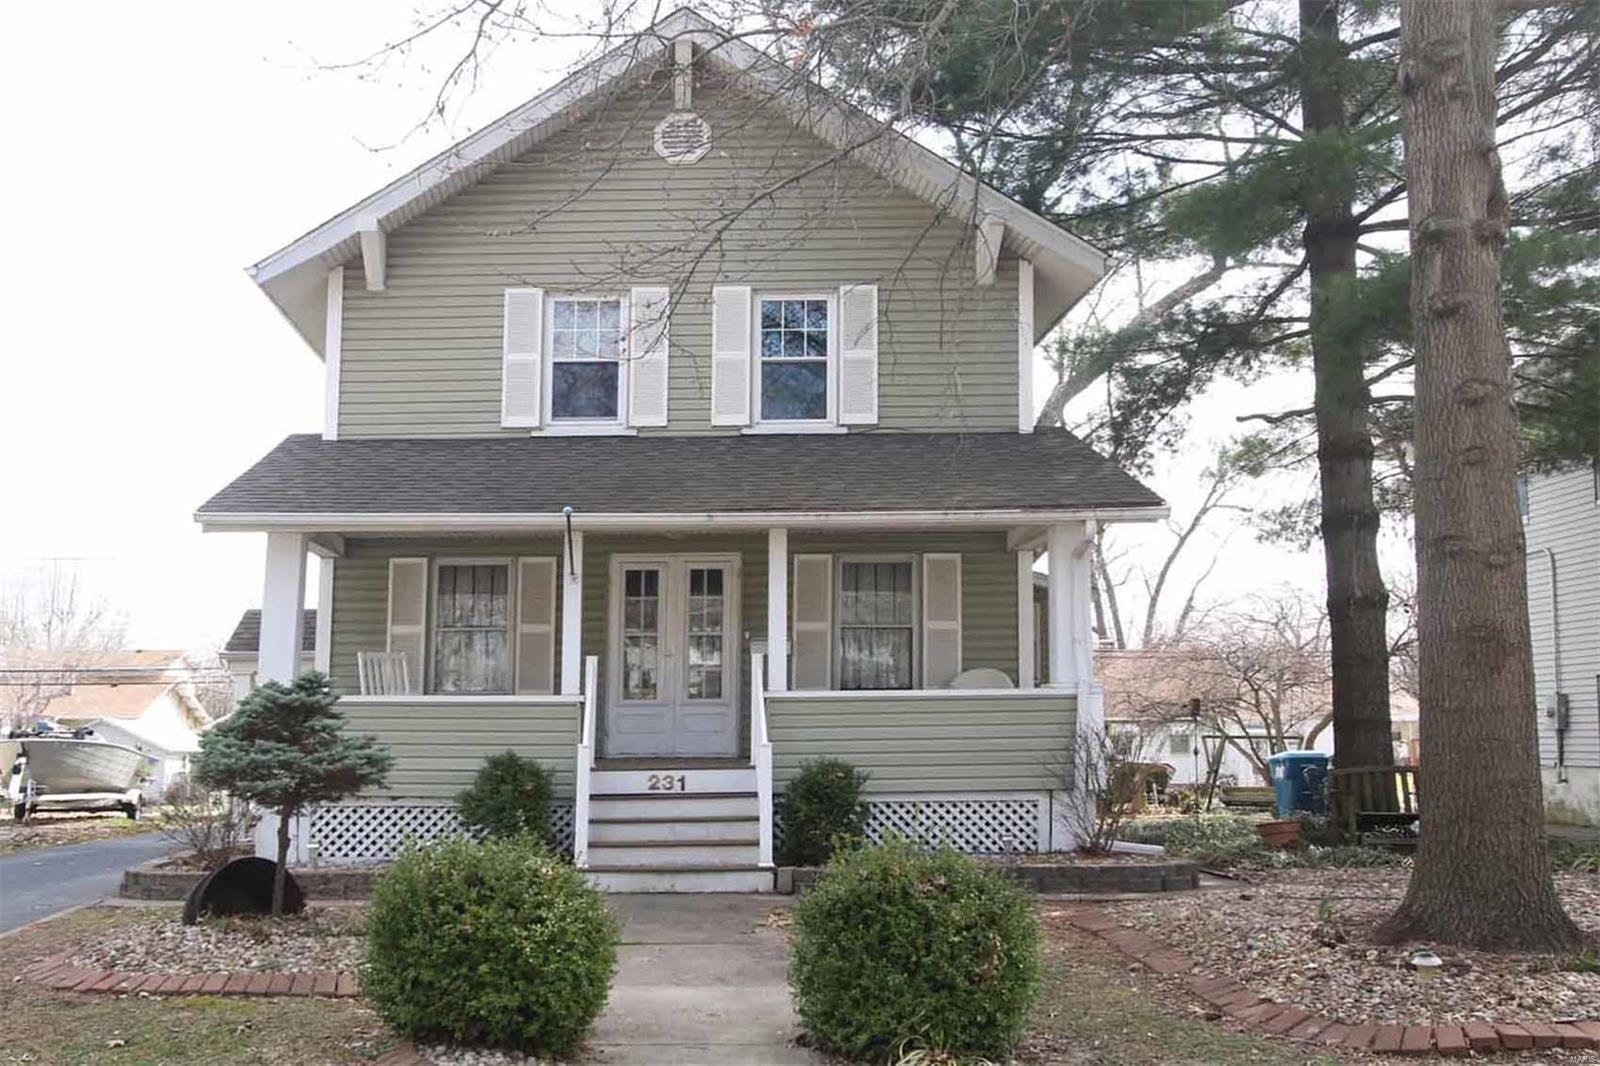 231 S 9th Street Property Photo - Wood River, IL real estate listing